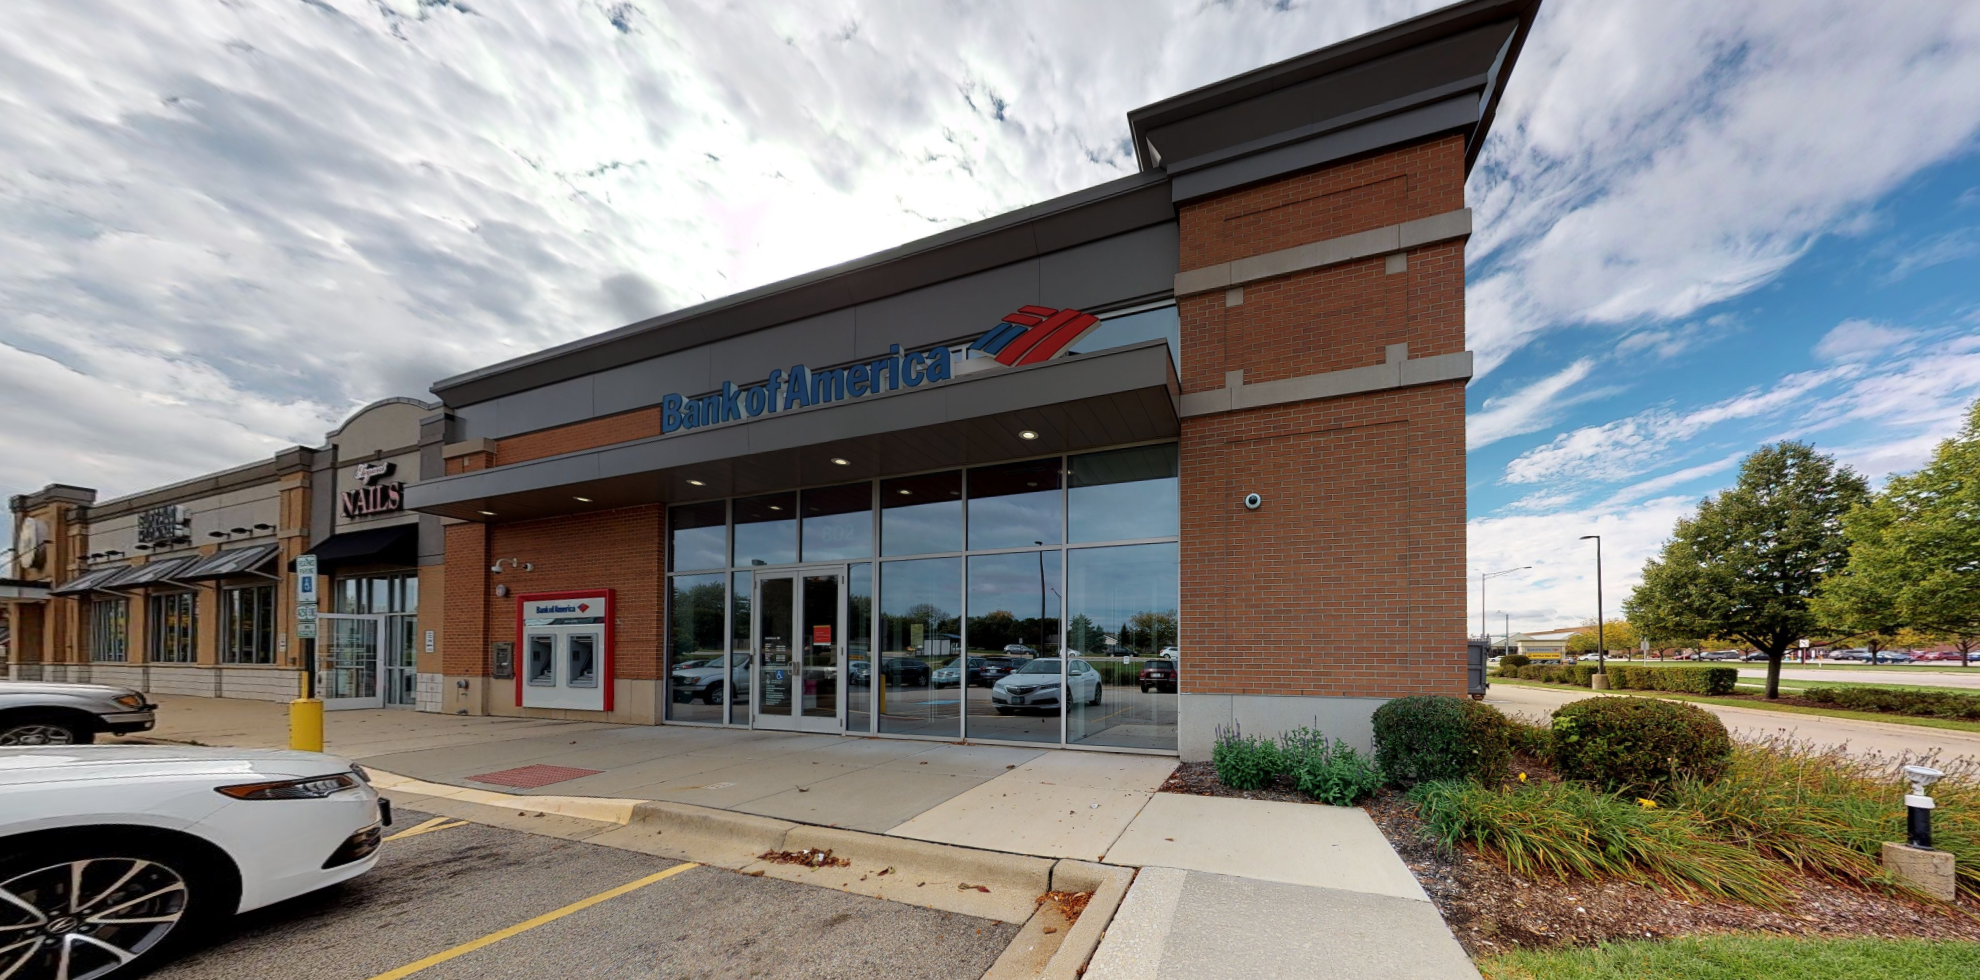 Bank of America financial center with drive-thru ATM and teller | 802 Commons Dr, Geneva, IL 60134